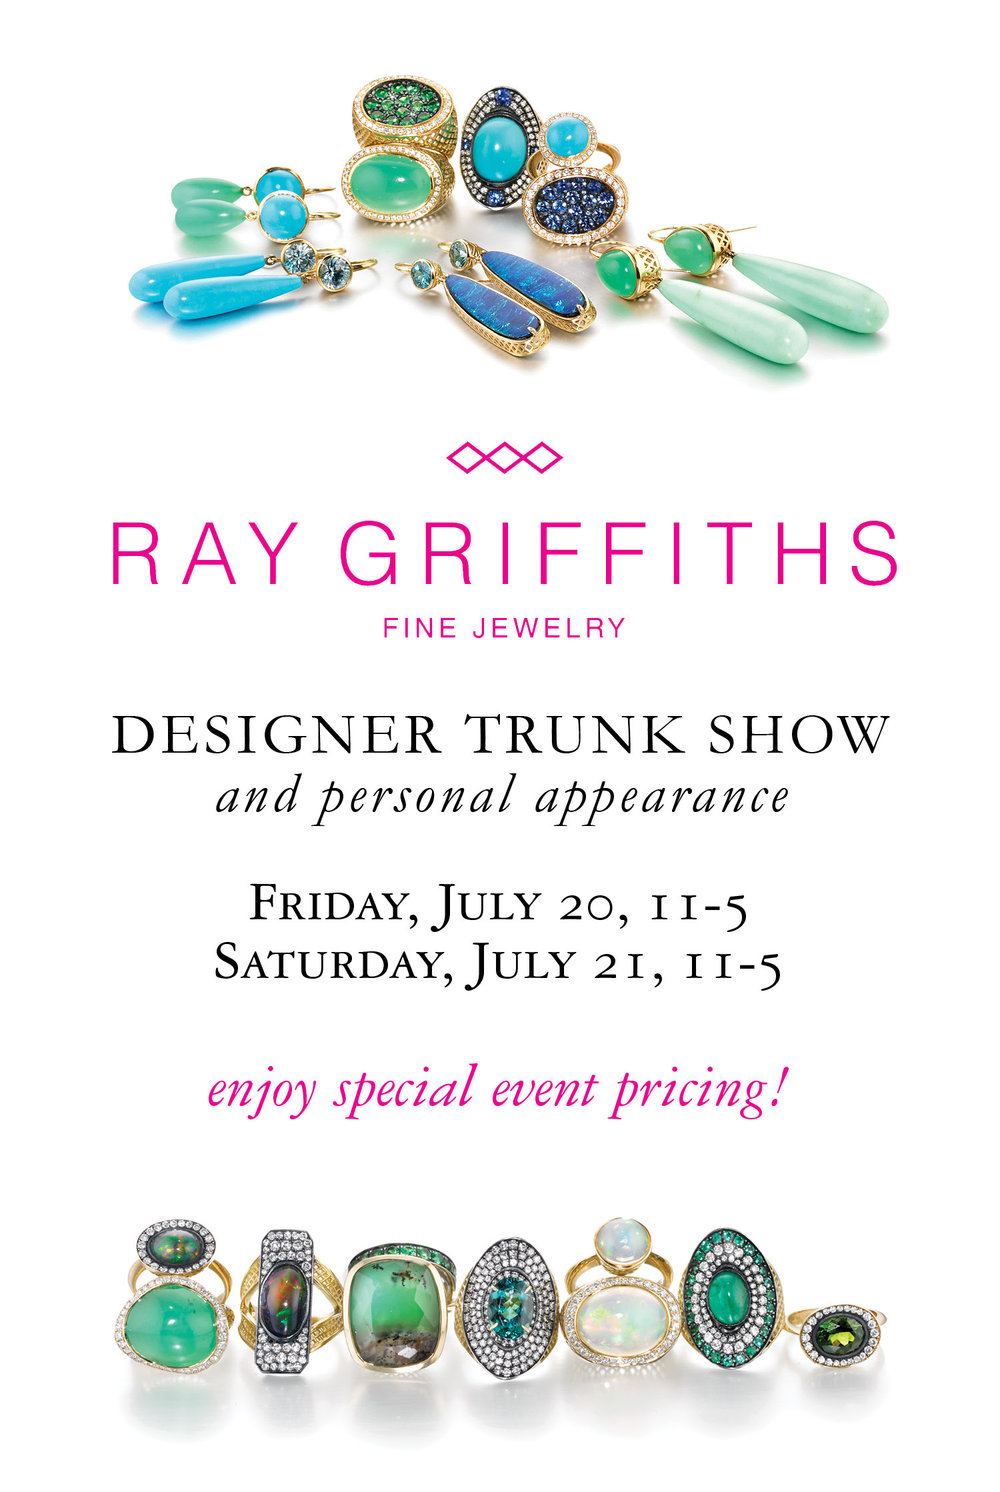 Ray Griffiths Trunk Show Summer 2018.jpg